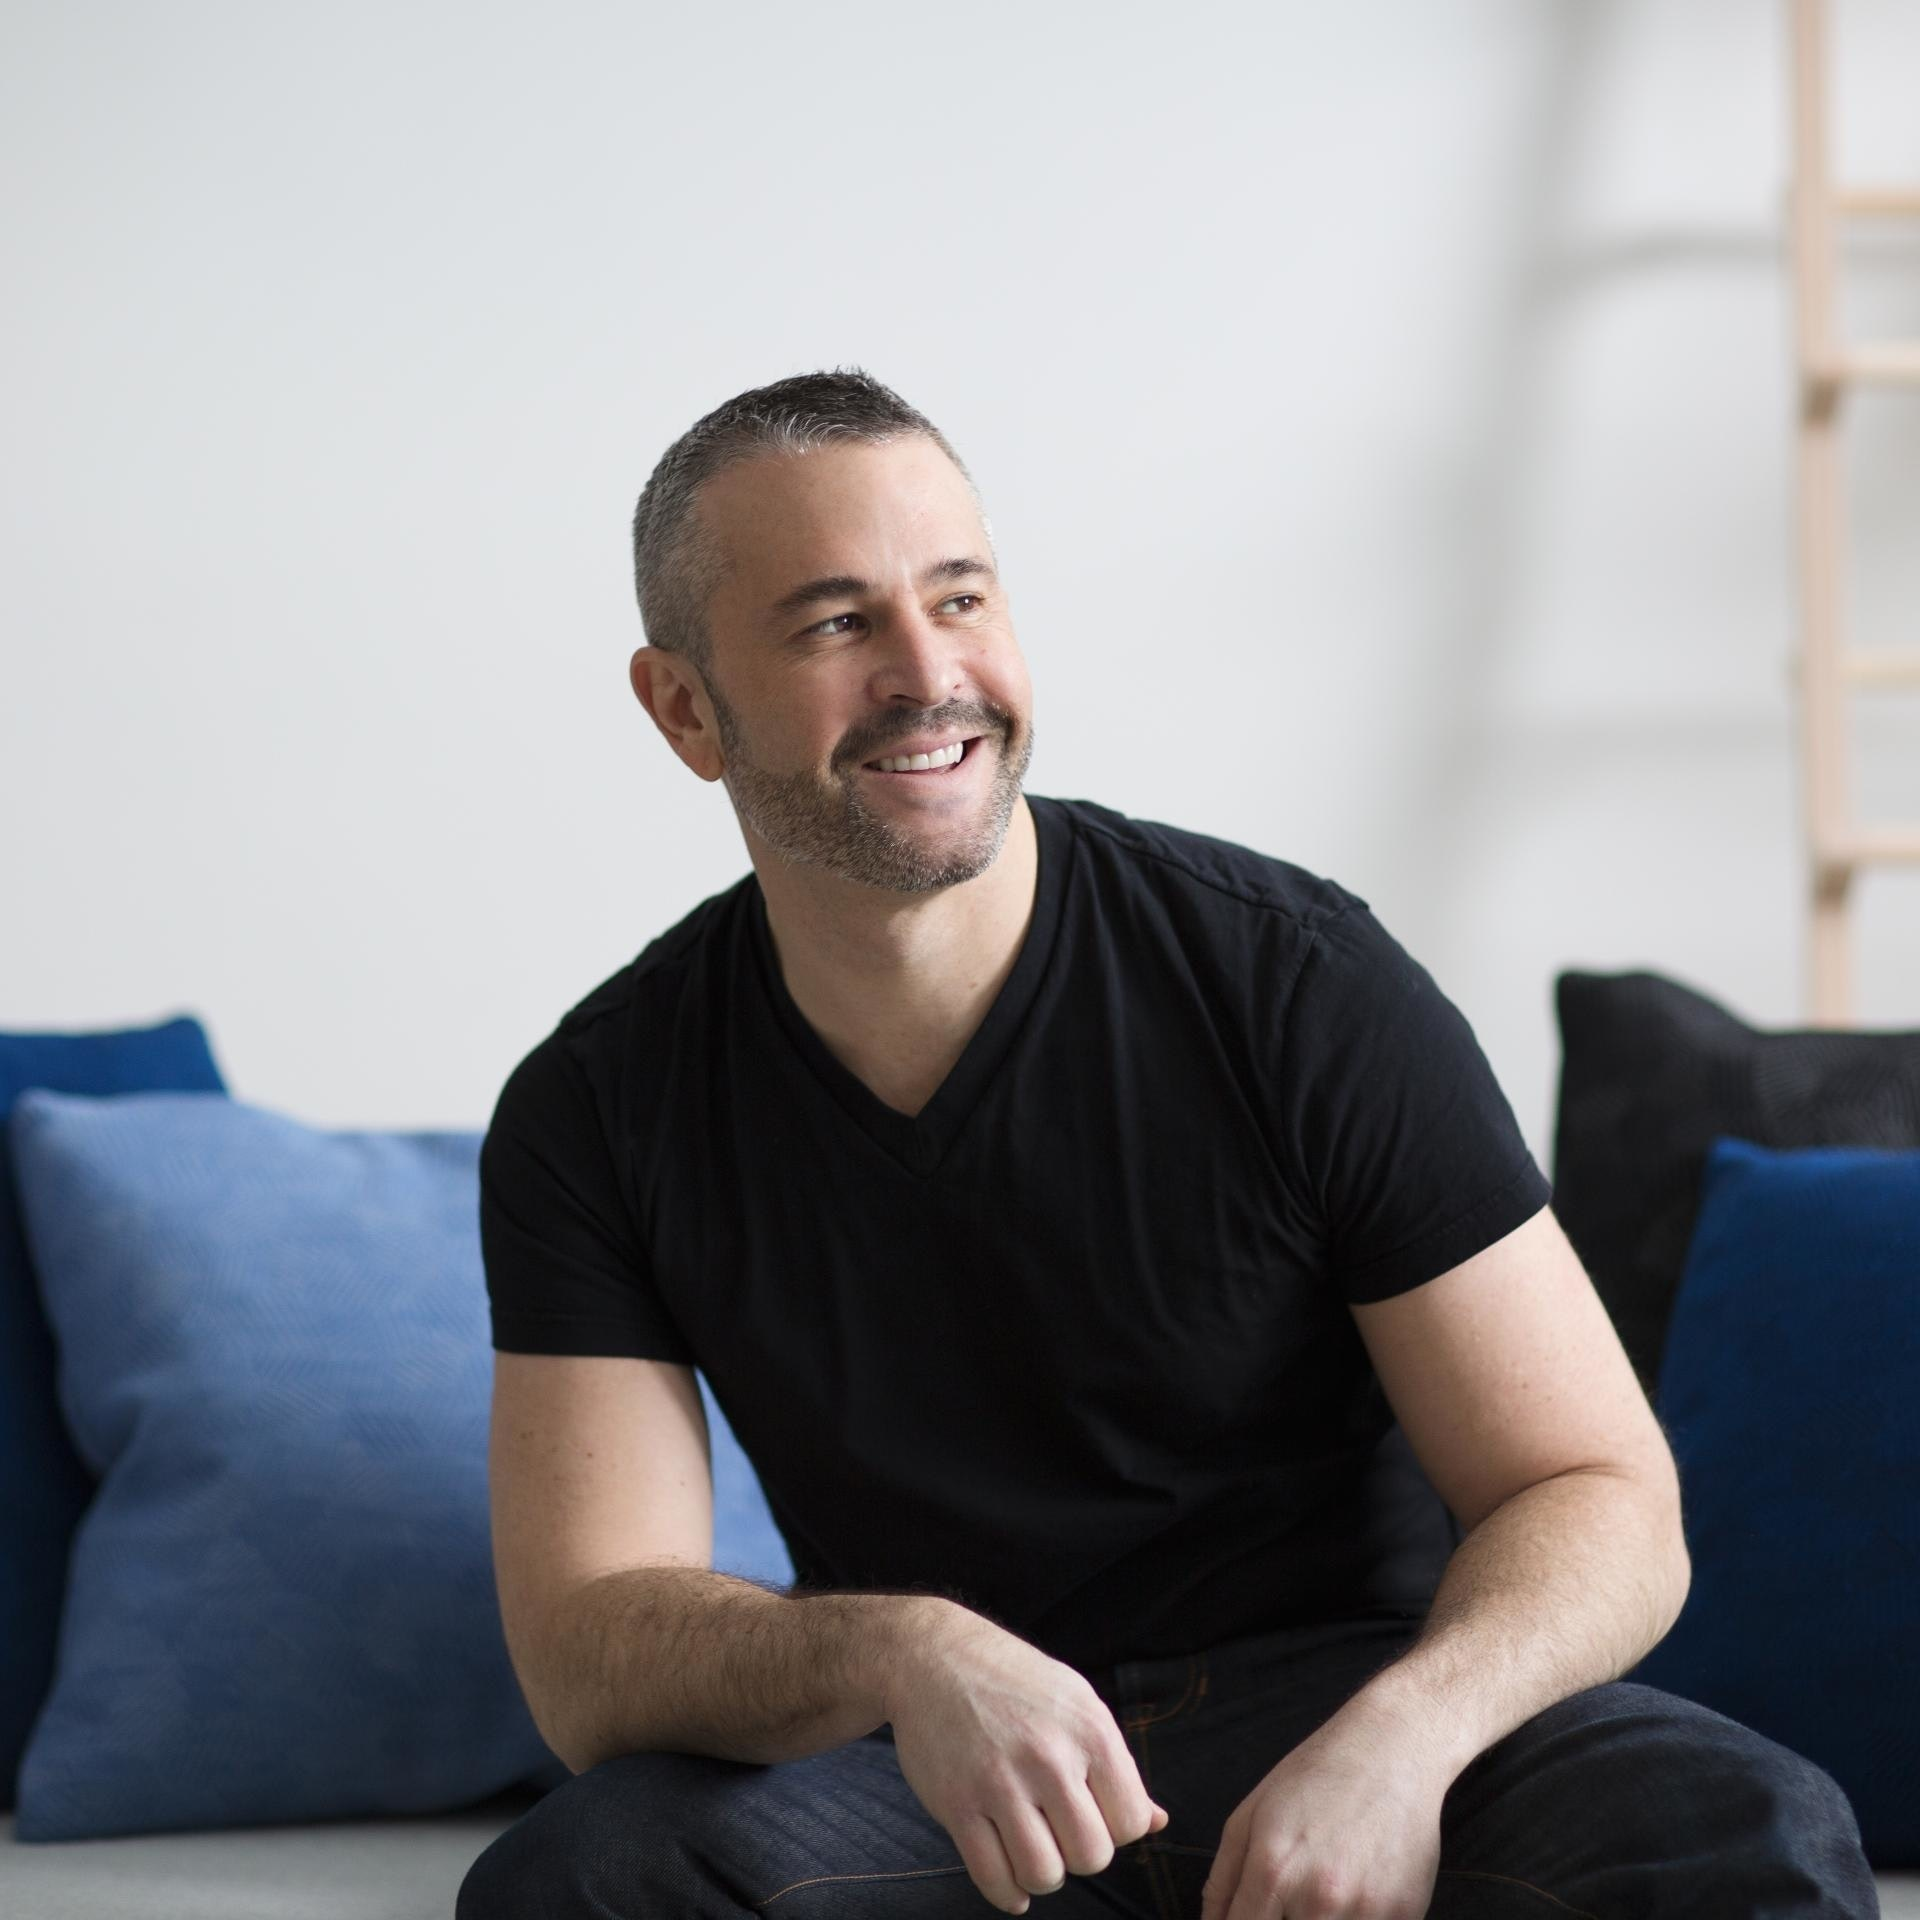 Jason Goldberg